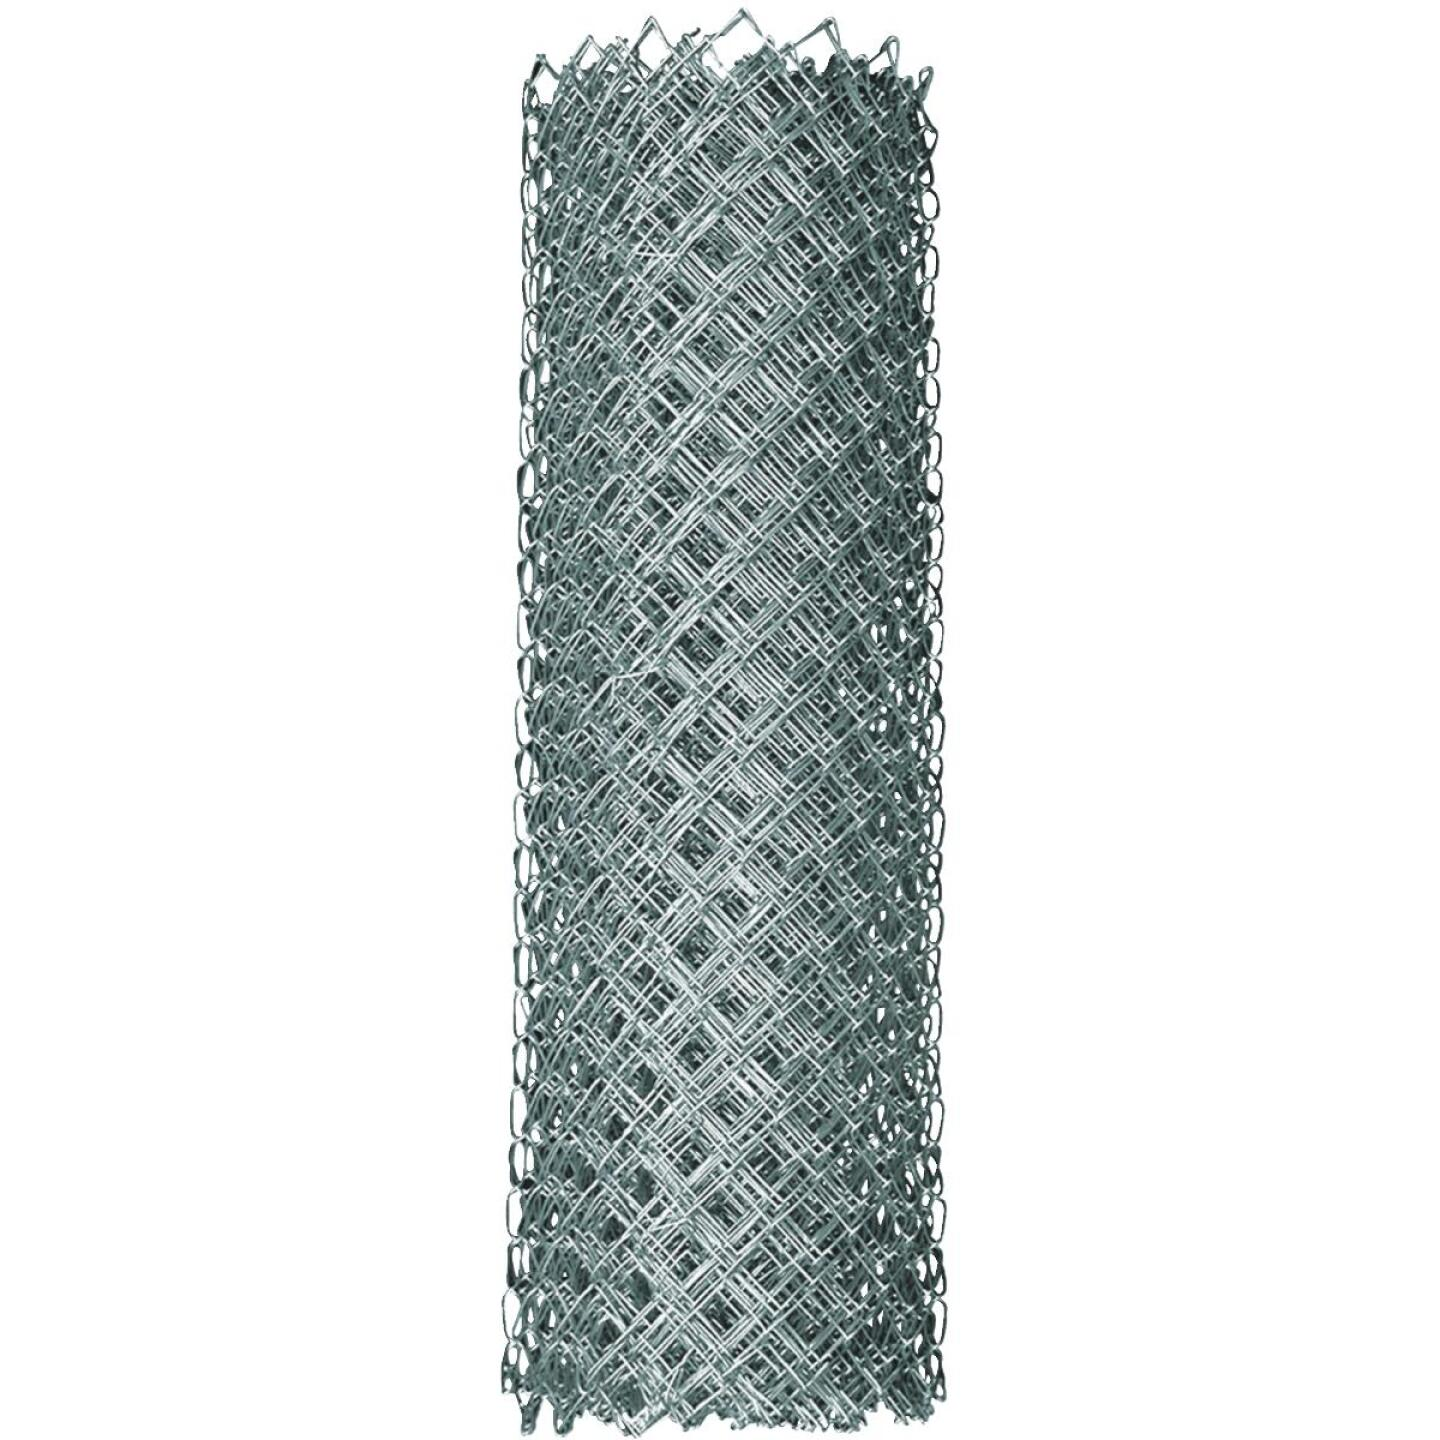 Midwest Air Tech 48 in. x 50 ft. 2-3/8 in. 12.5 ga Chain Link Fencing Image 1